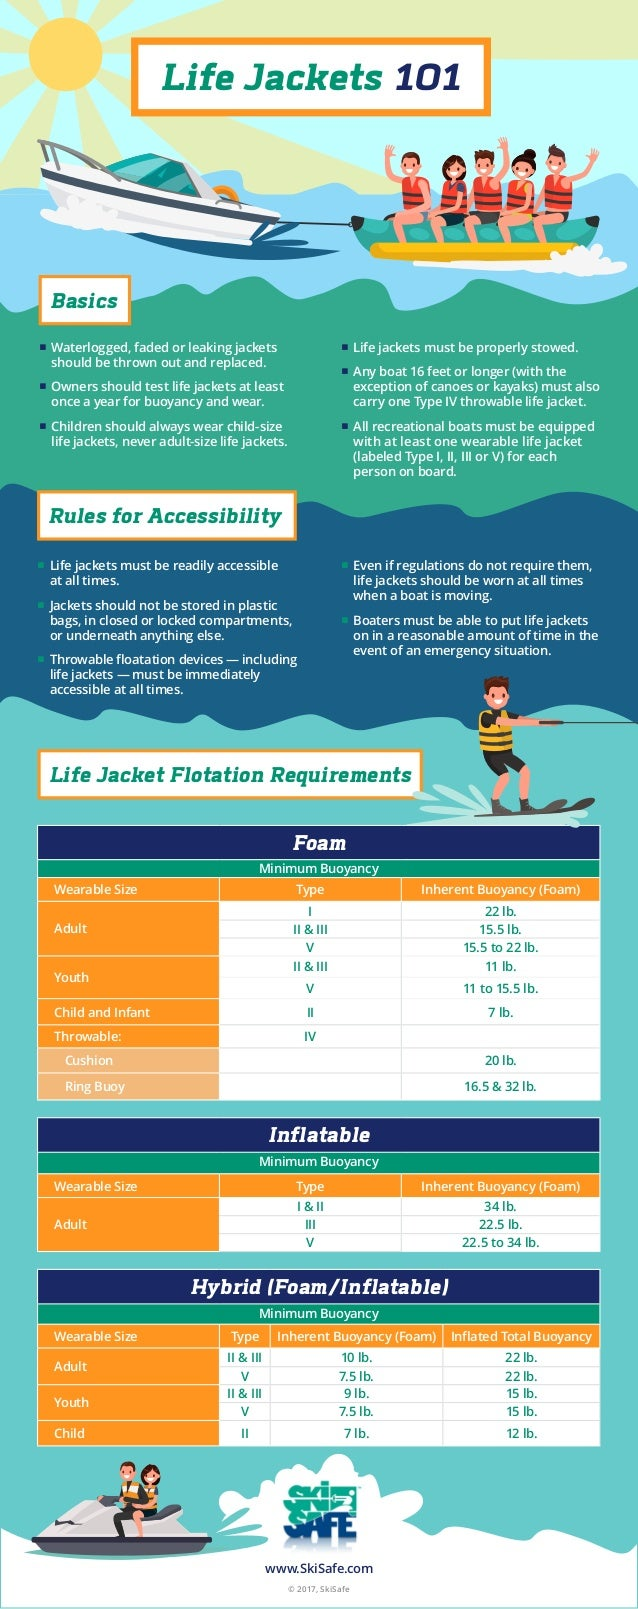 Life Jackets 101 Basics Rules for Accessibility ■■ Waterlogged, faded or leaking jackets should be thrown out and replaced...